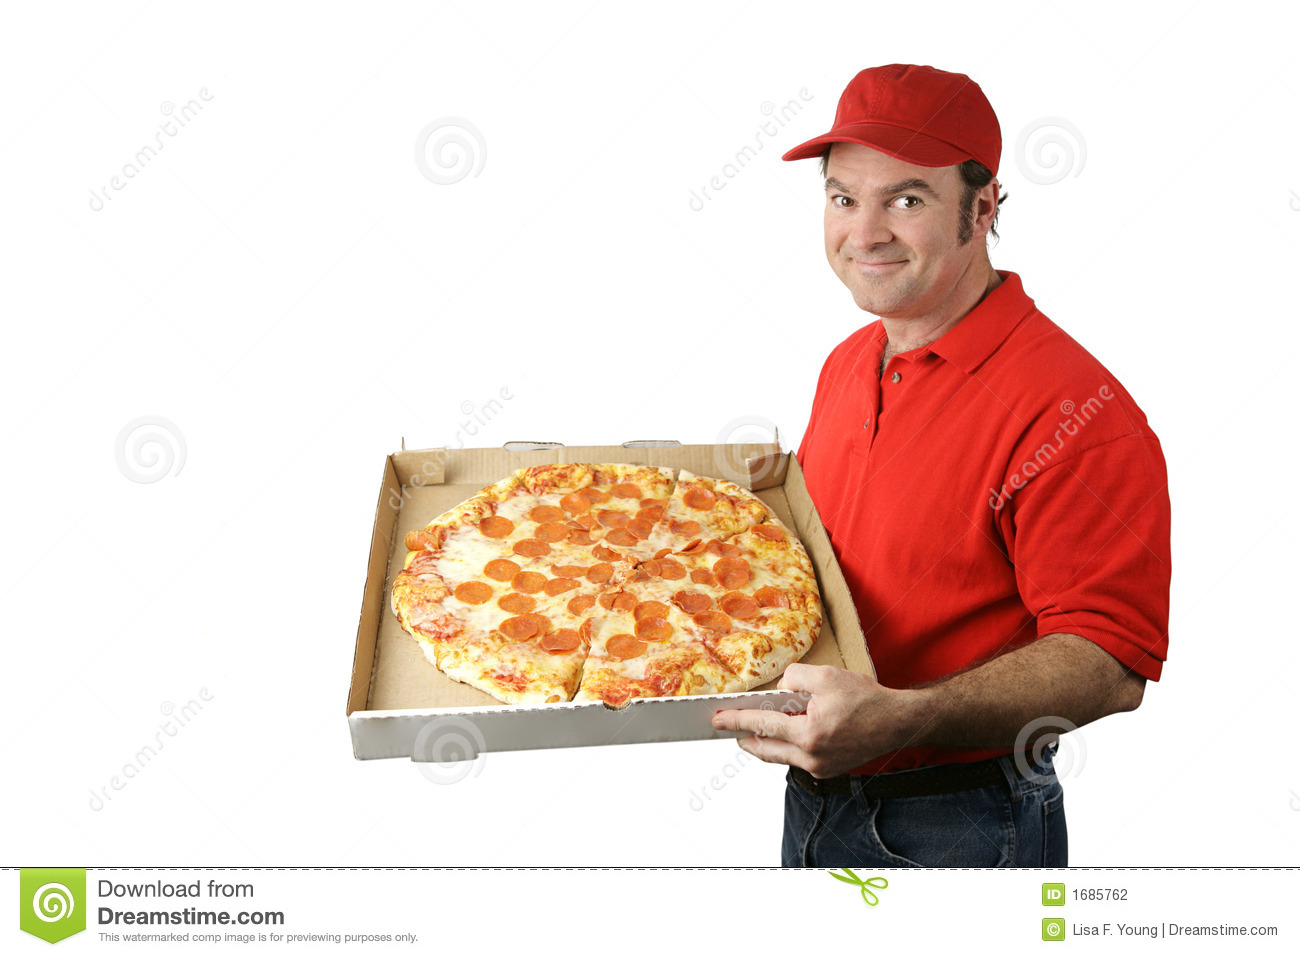 The Lucky Pizza Man Who Got To Deliver Our Pizza - YouTube